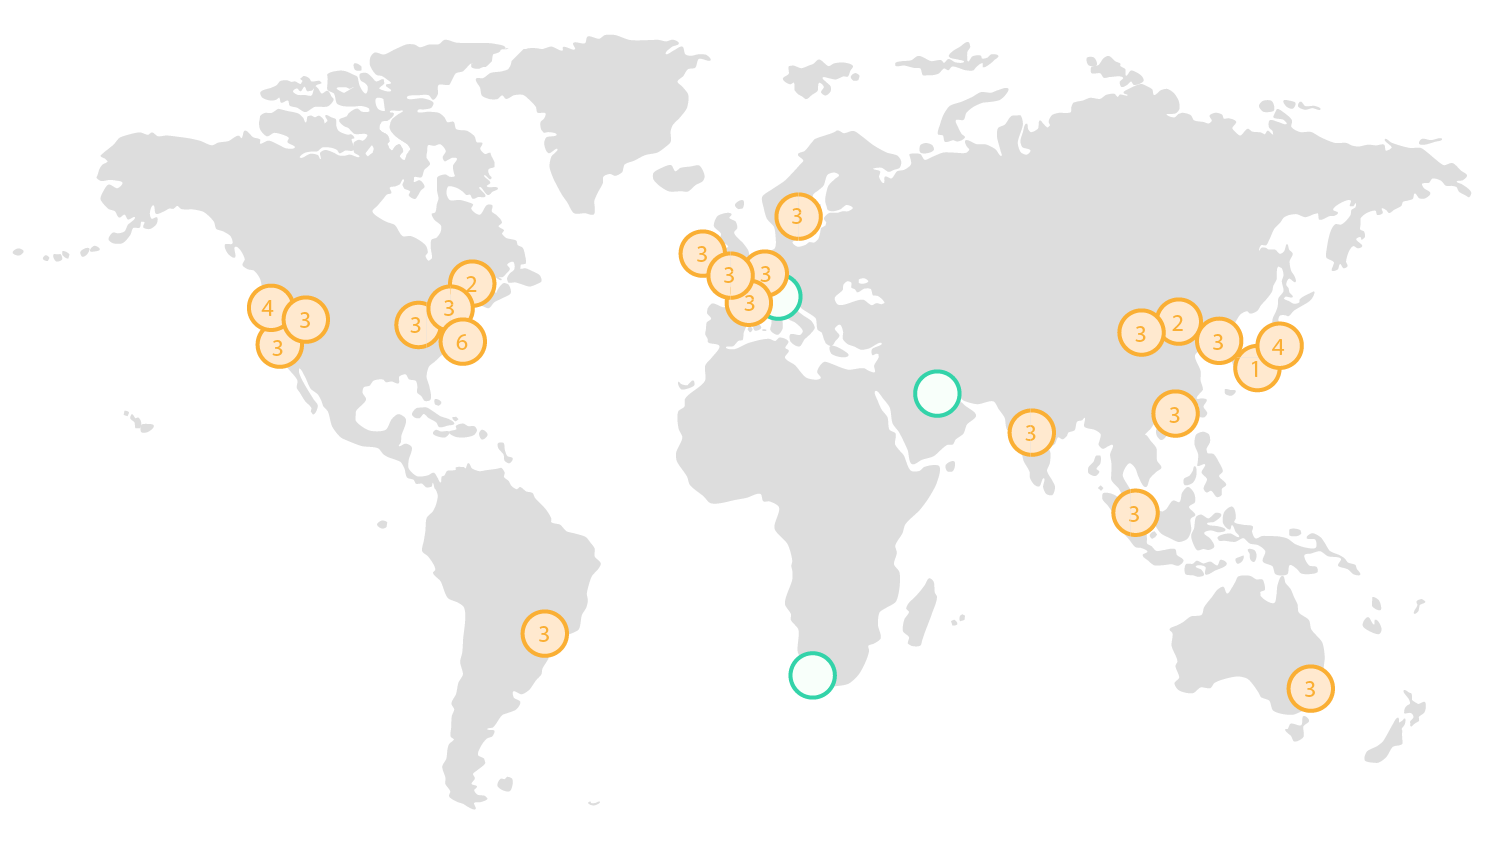 Global Infrastructure on